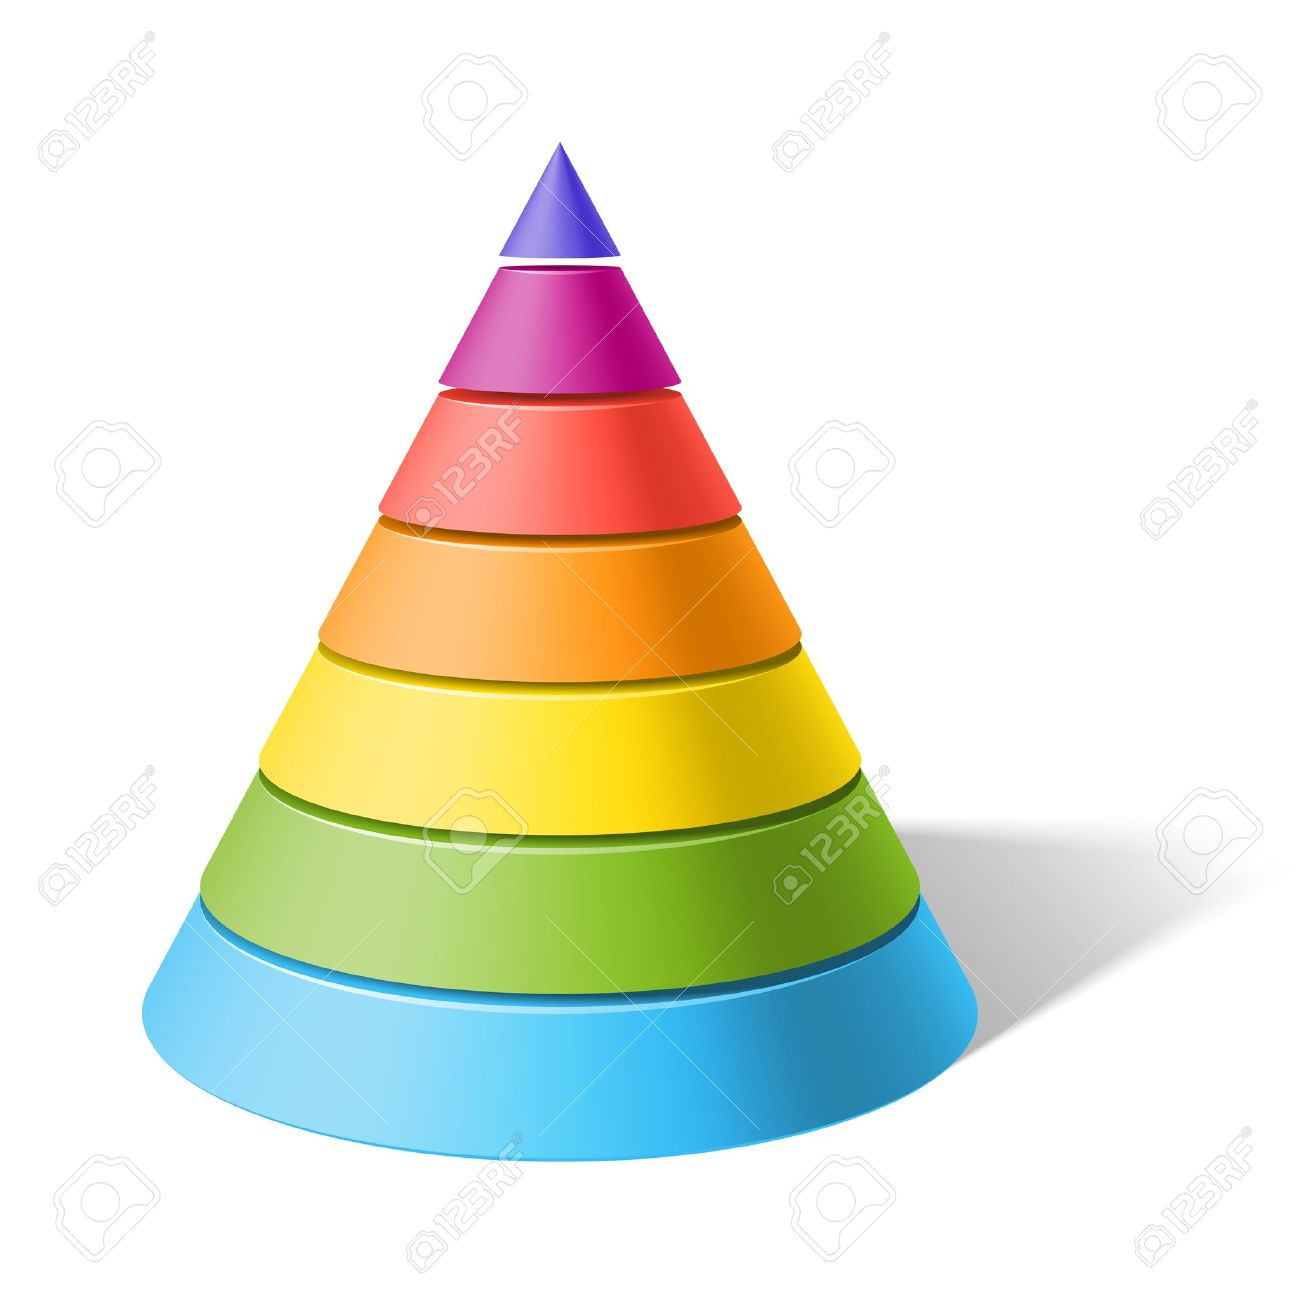 Layered Cone Royalty Free Cliparts, Vectors, And Stock.